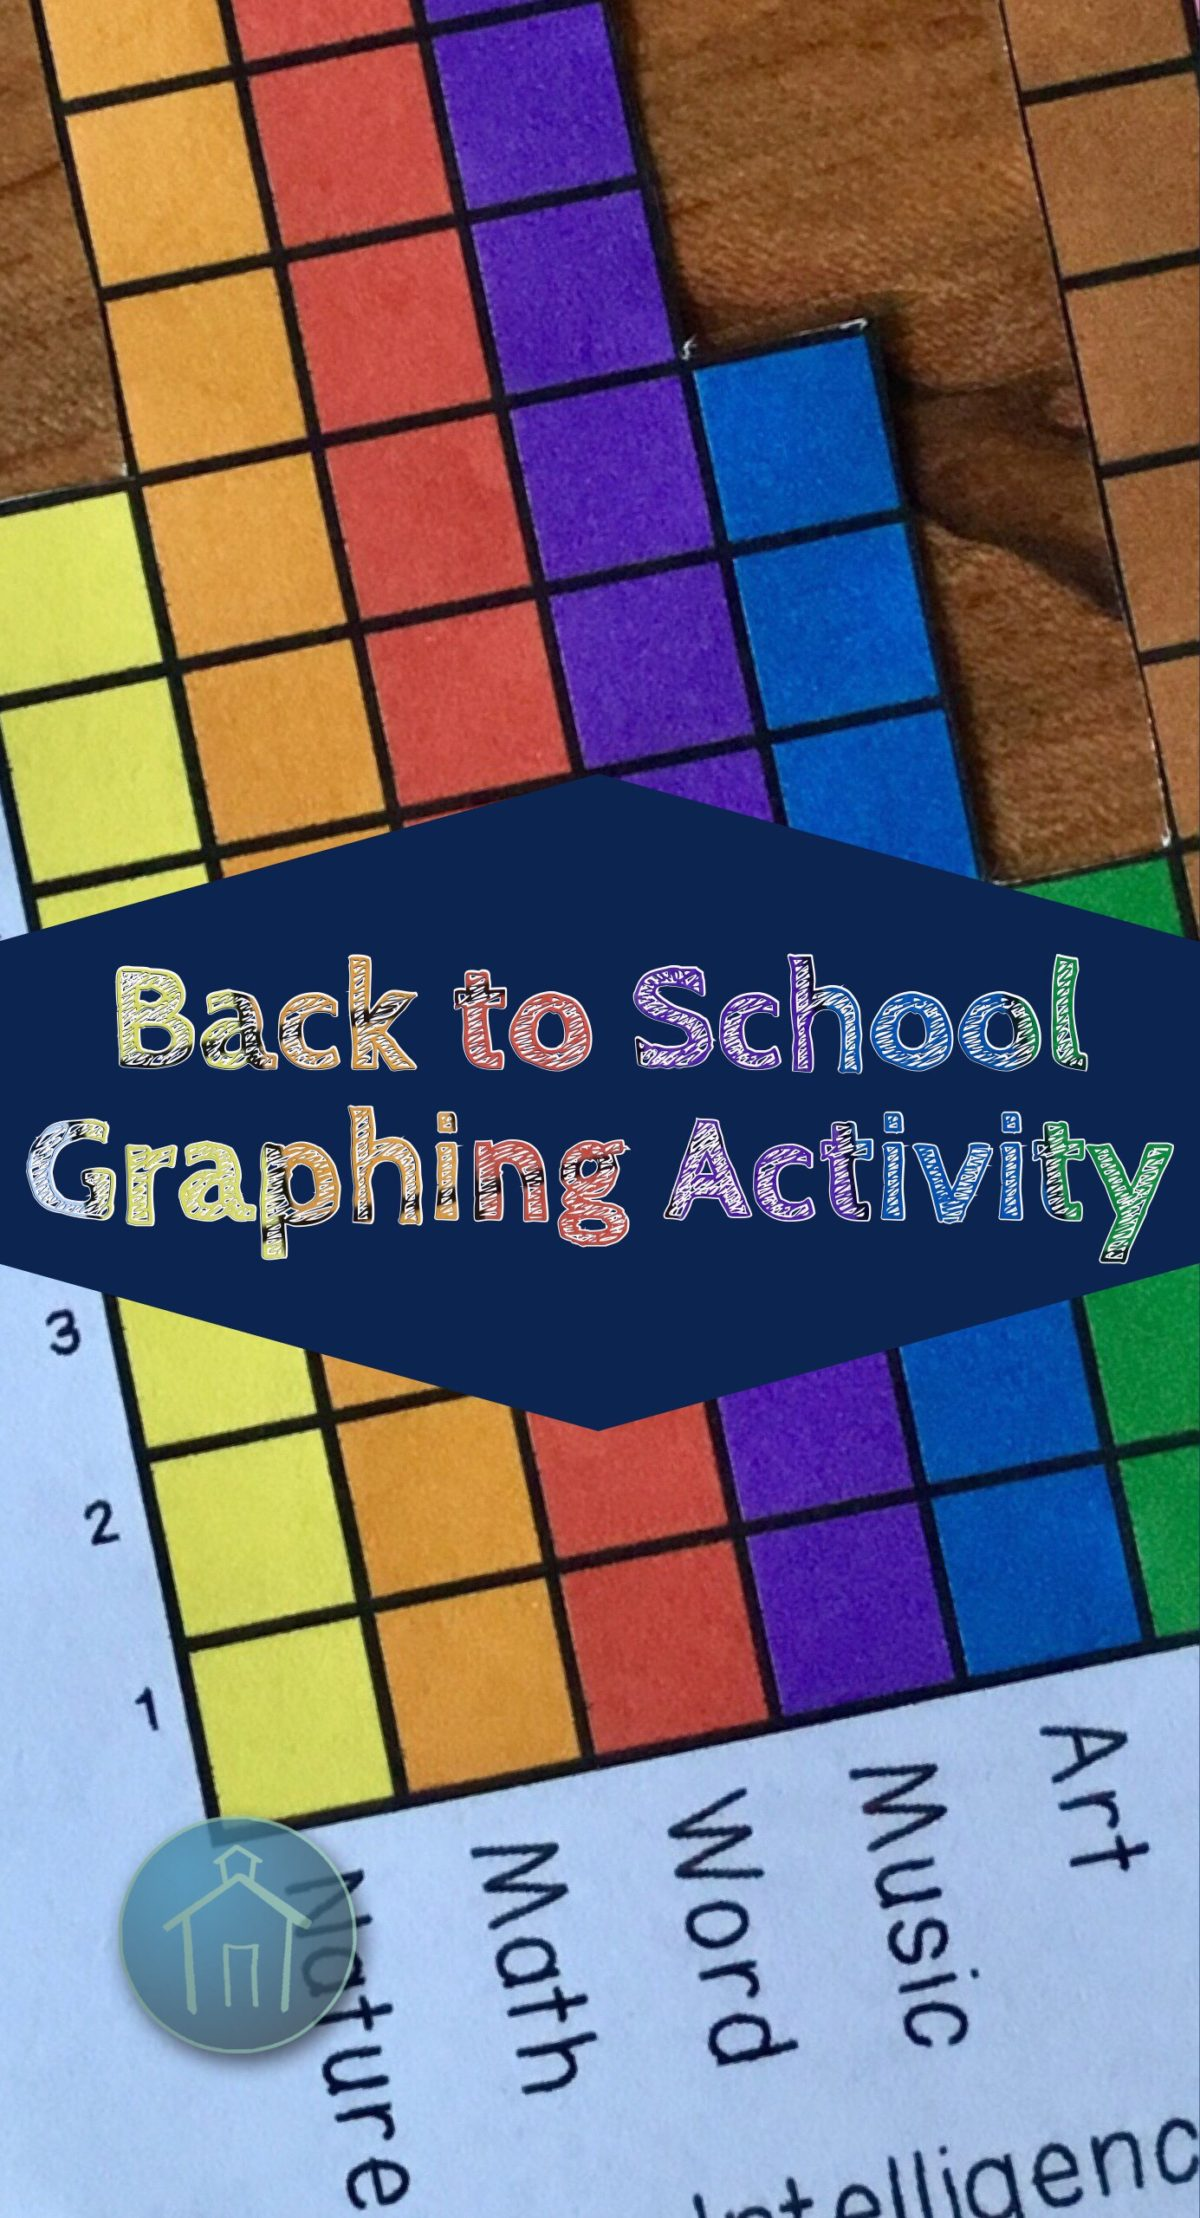 A Graphing Activity for Back to School and Multiple Intelligences